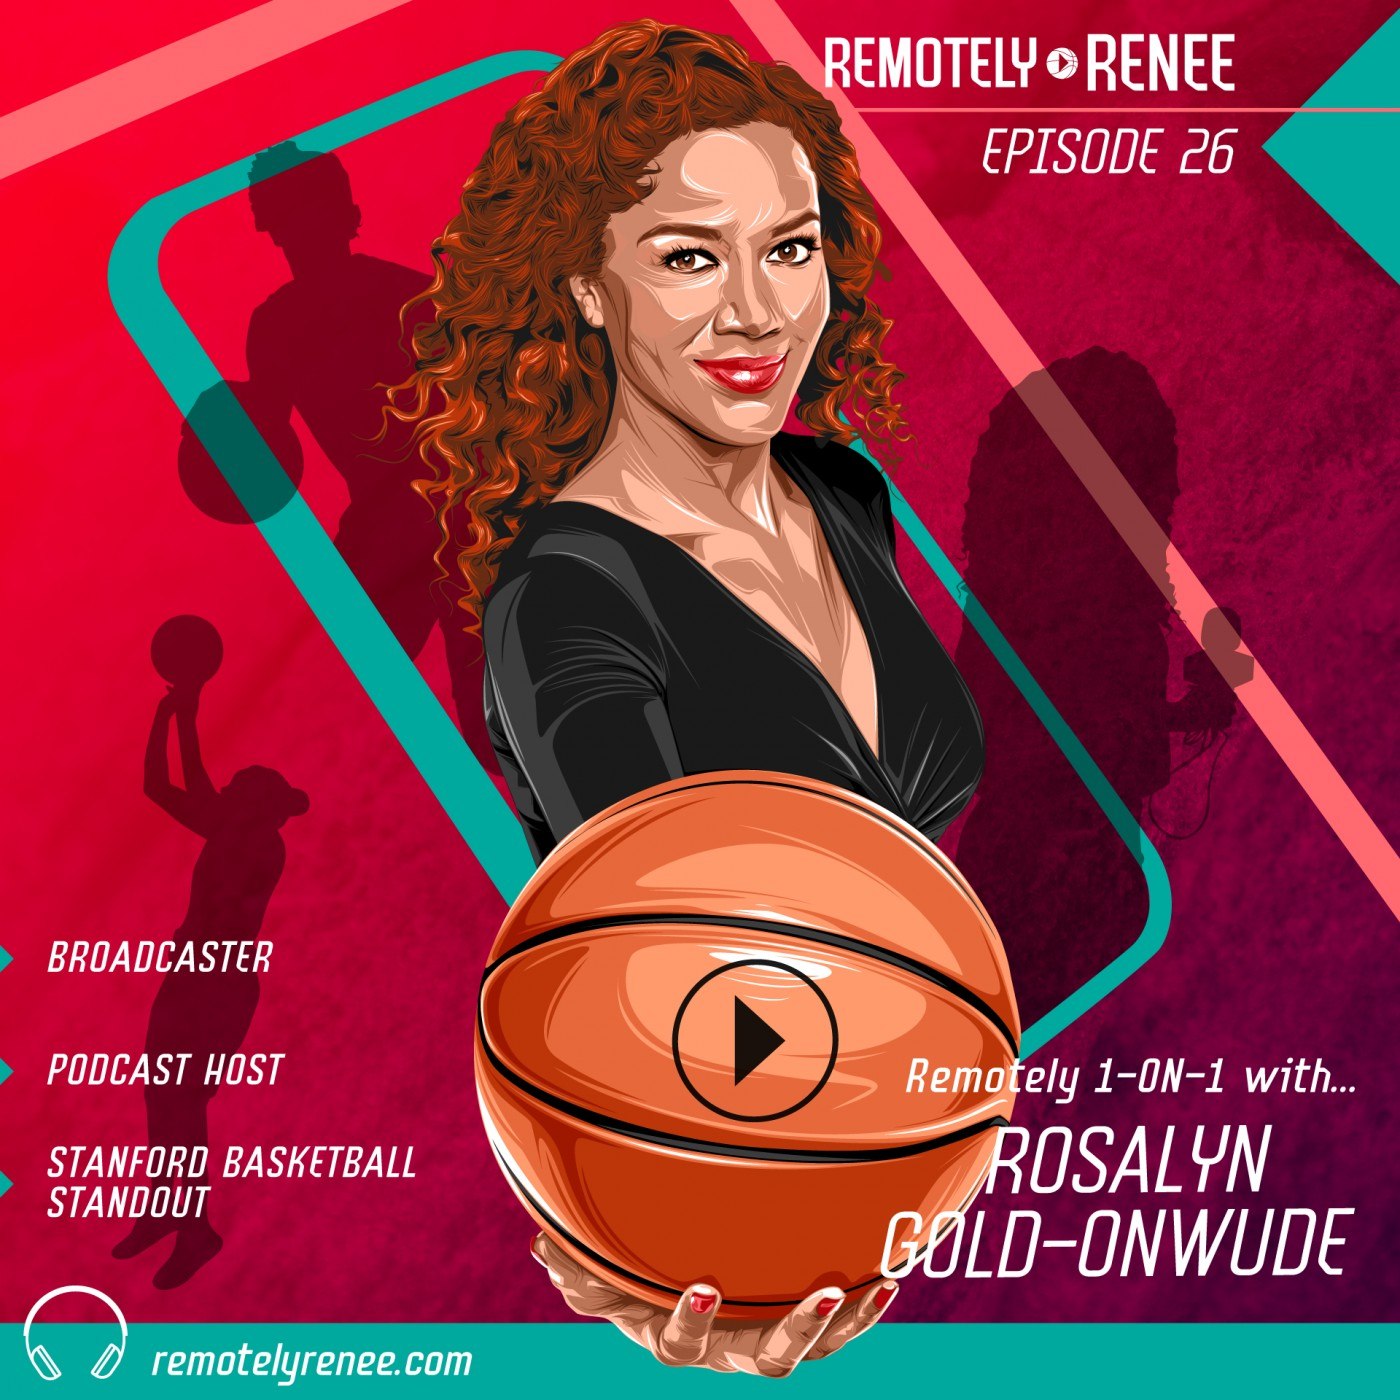 Ep 26.5 - Rosalyn Gold-Onwude - Sports Broadcaster IRL